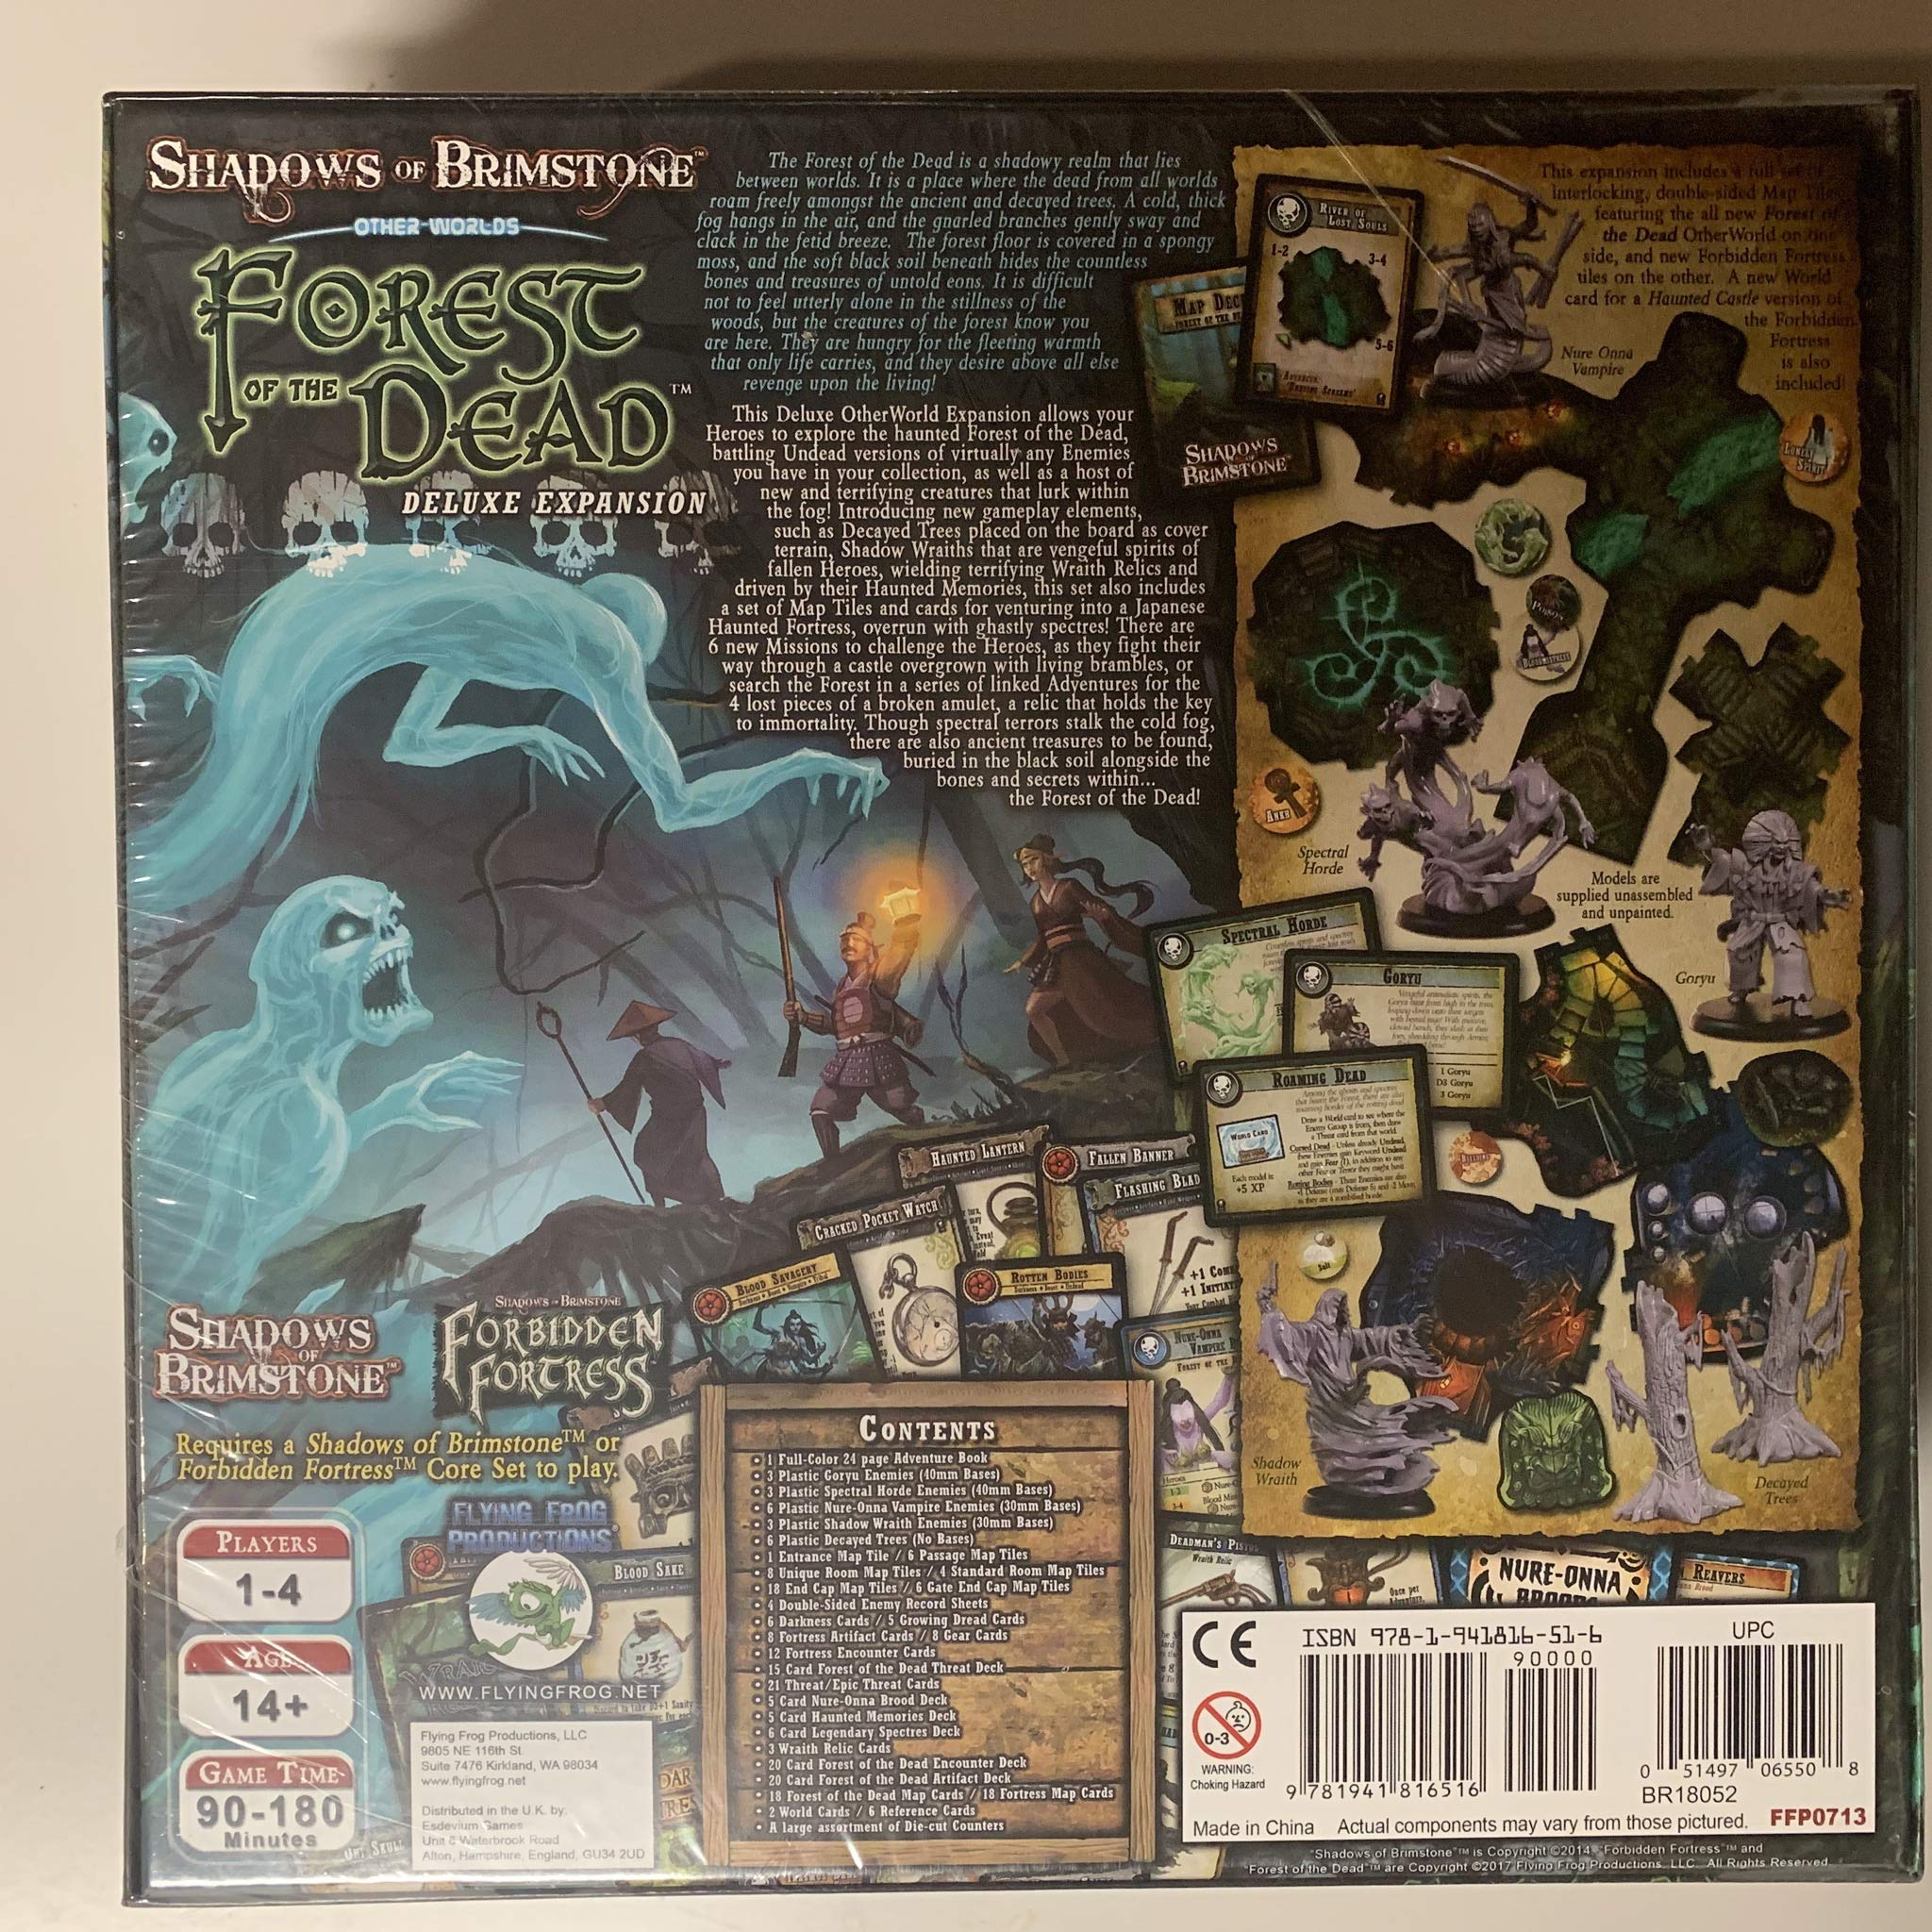 Shadows of Brimstone FFP0713 Flying Frog Forest of the Dead Deluxe Expansion